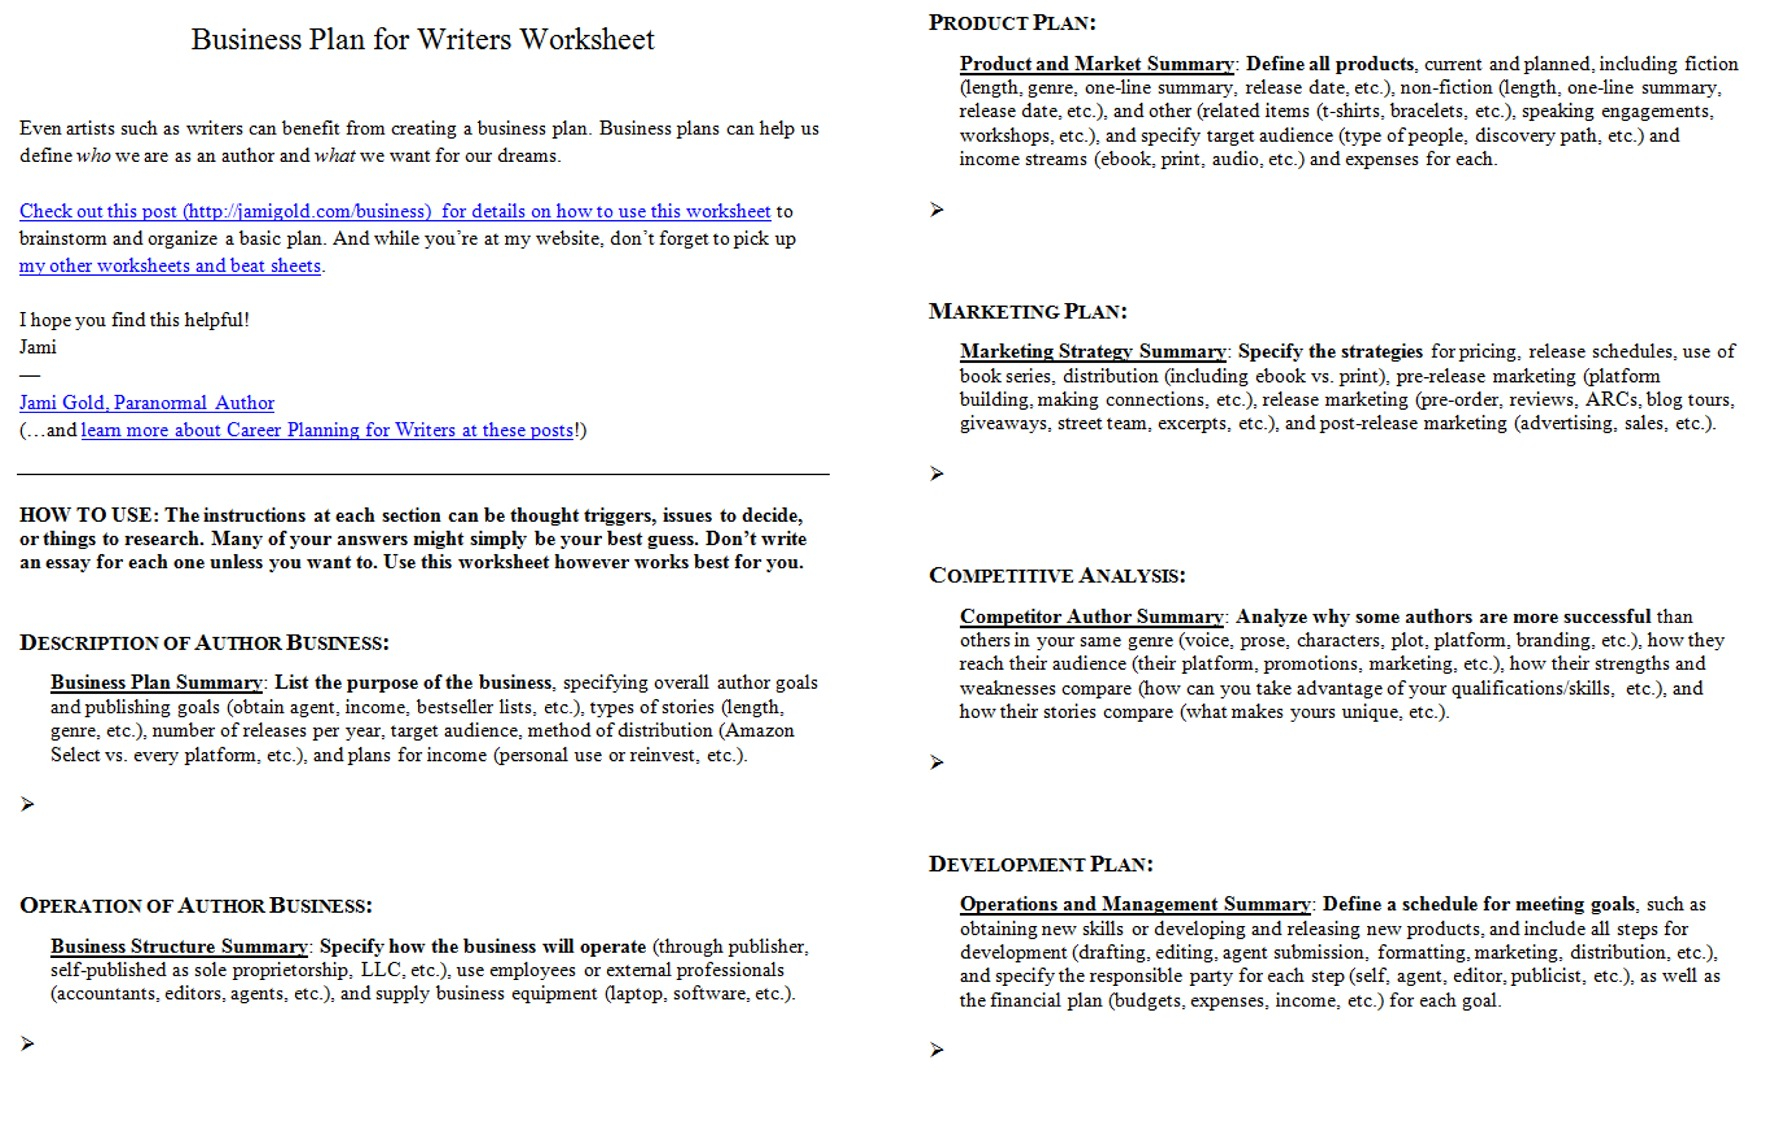 Proatmealus  Prepossessing Worksheets For Writers  Jami Gold Paranormal Author With Inspiring Screen Shot Of Both Pages Of The Business Plan For Writers Worksheet With Awesome Capitalization Worksheets St Grade Also Finance Worksheet In Addition Th Grade Reading Comprehension Worksheets Printable And College Algebra Practice Worksheets As Well As Poetry Scavenger Hunt Worksheet Additionally Descriptive Language Worksheets From Jamigoldcom With Proatmealus  Inspiring Worksheets For Writers  Jami Gold Paranormal Author With Awesome Screen Shot Of Both Pages Of The Business Plan For Writers Worksheet And Prepossessing Capitalization Worksheets St Grade Also Finance Worksheet In Addition Th Grade Reading Comprehension Worksheets Printable From Jamigoldcom